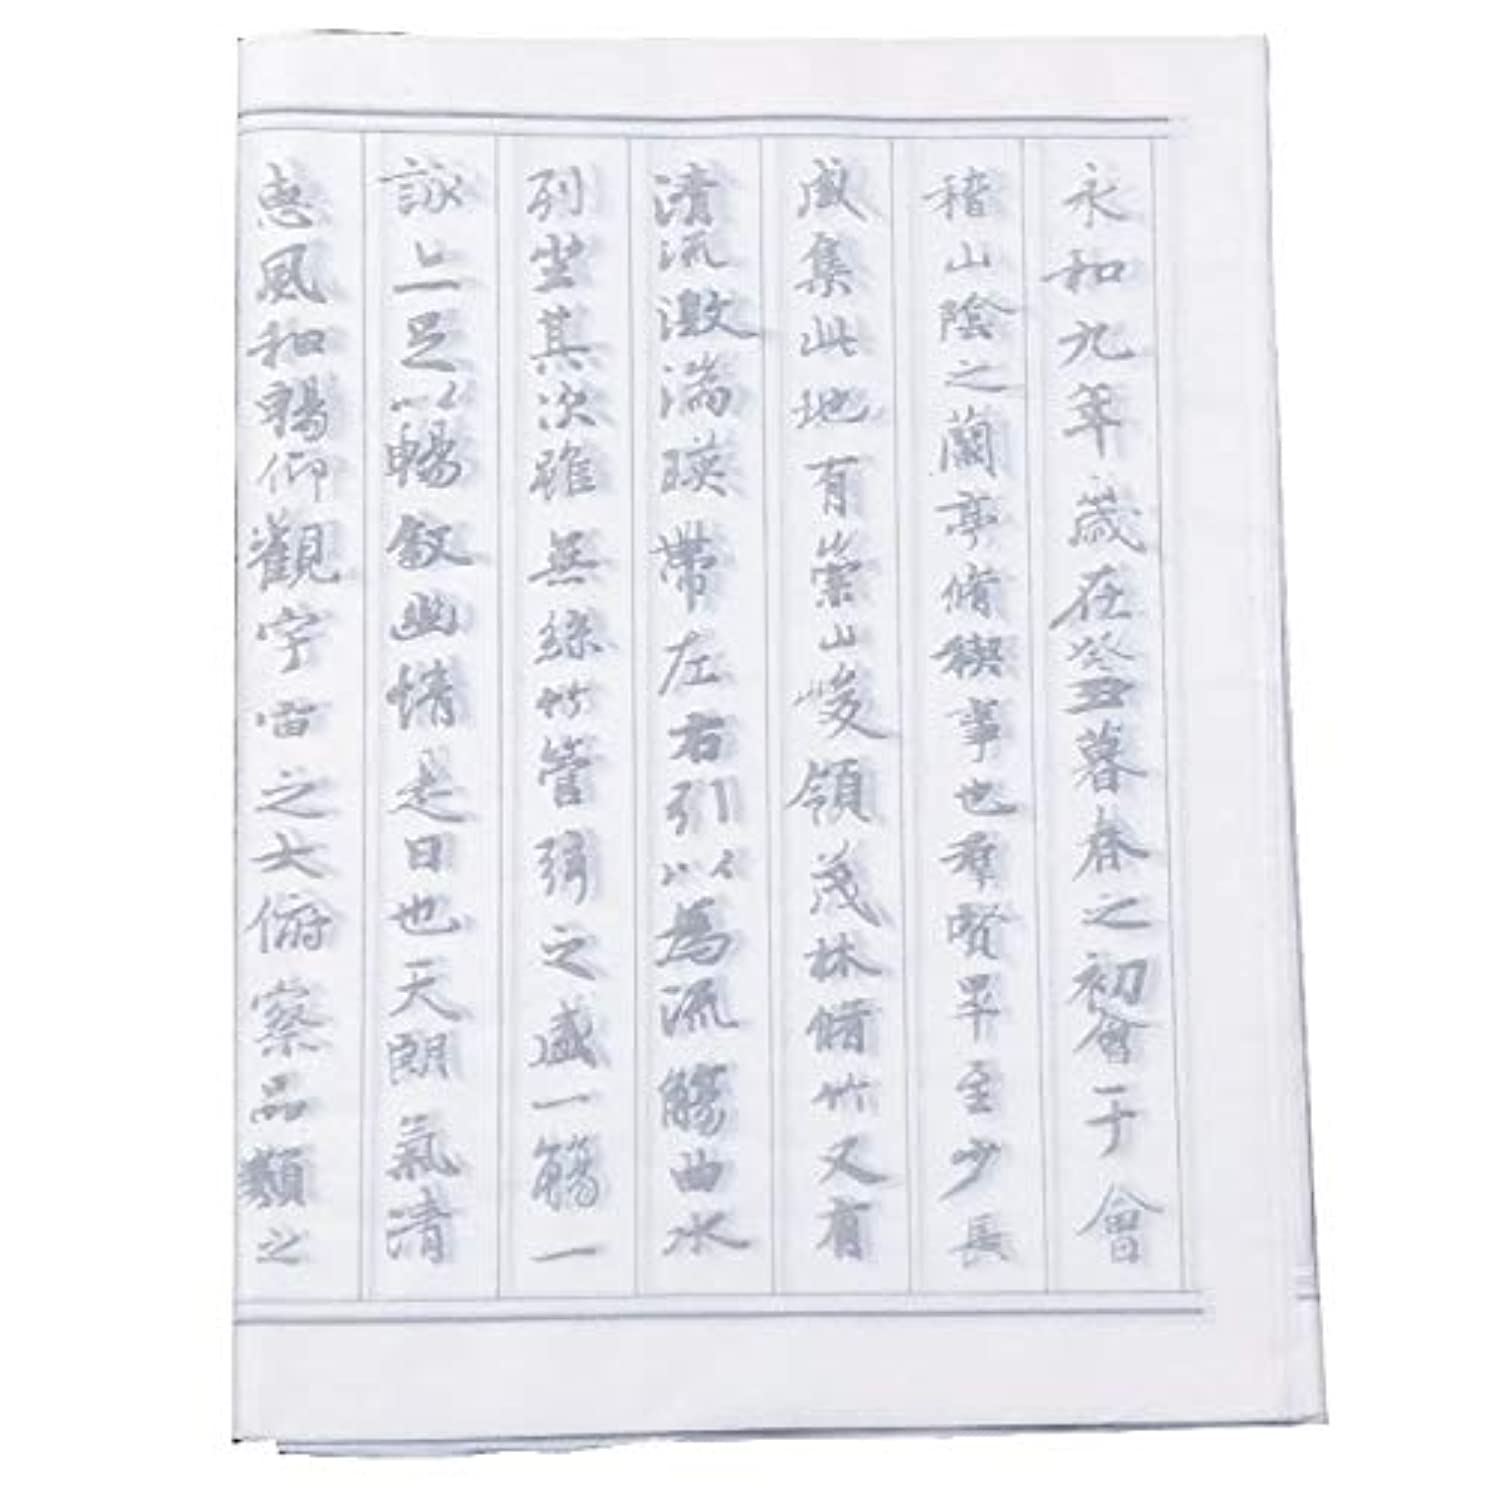 Tianjintang Chinese Calligraphy Brush Ink Writing Sumi Paper/Xuan Paper/Rice Paper Sheet for Calligraphy (34x69cm, The Orchid Pavilion 王羲之 兰亭序)